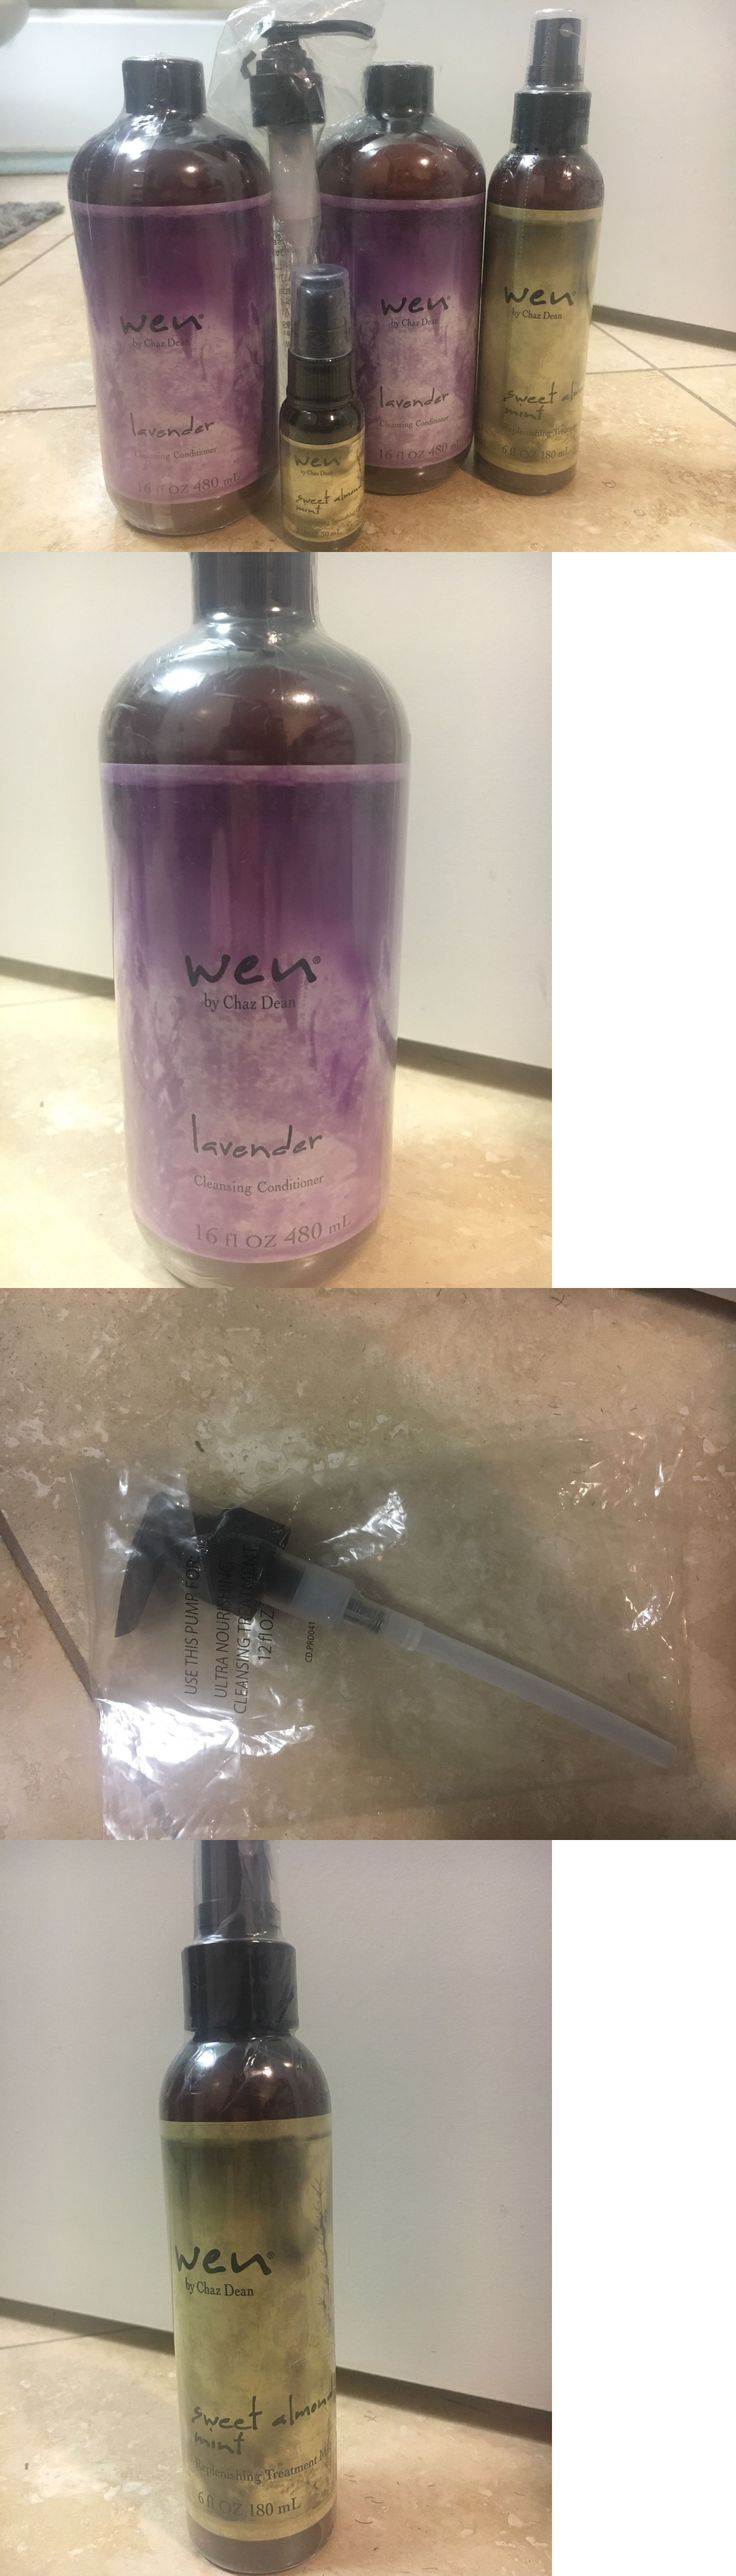 Sets and Kits: Wen Hair Kit-2-16Oz. Lavender Shampoo,1Pump, 6Oz. Replenishing Mist, And 1Oz.Serum -> BUY IT NOW ONLY: $55 on eBay!